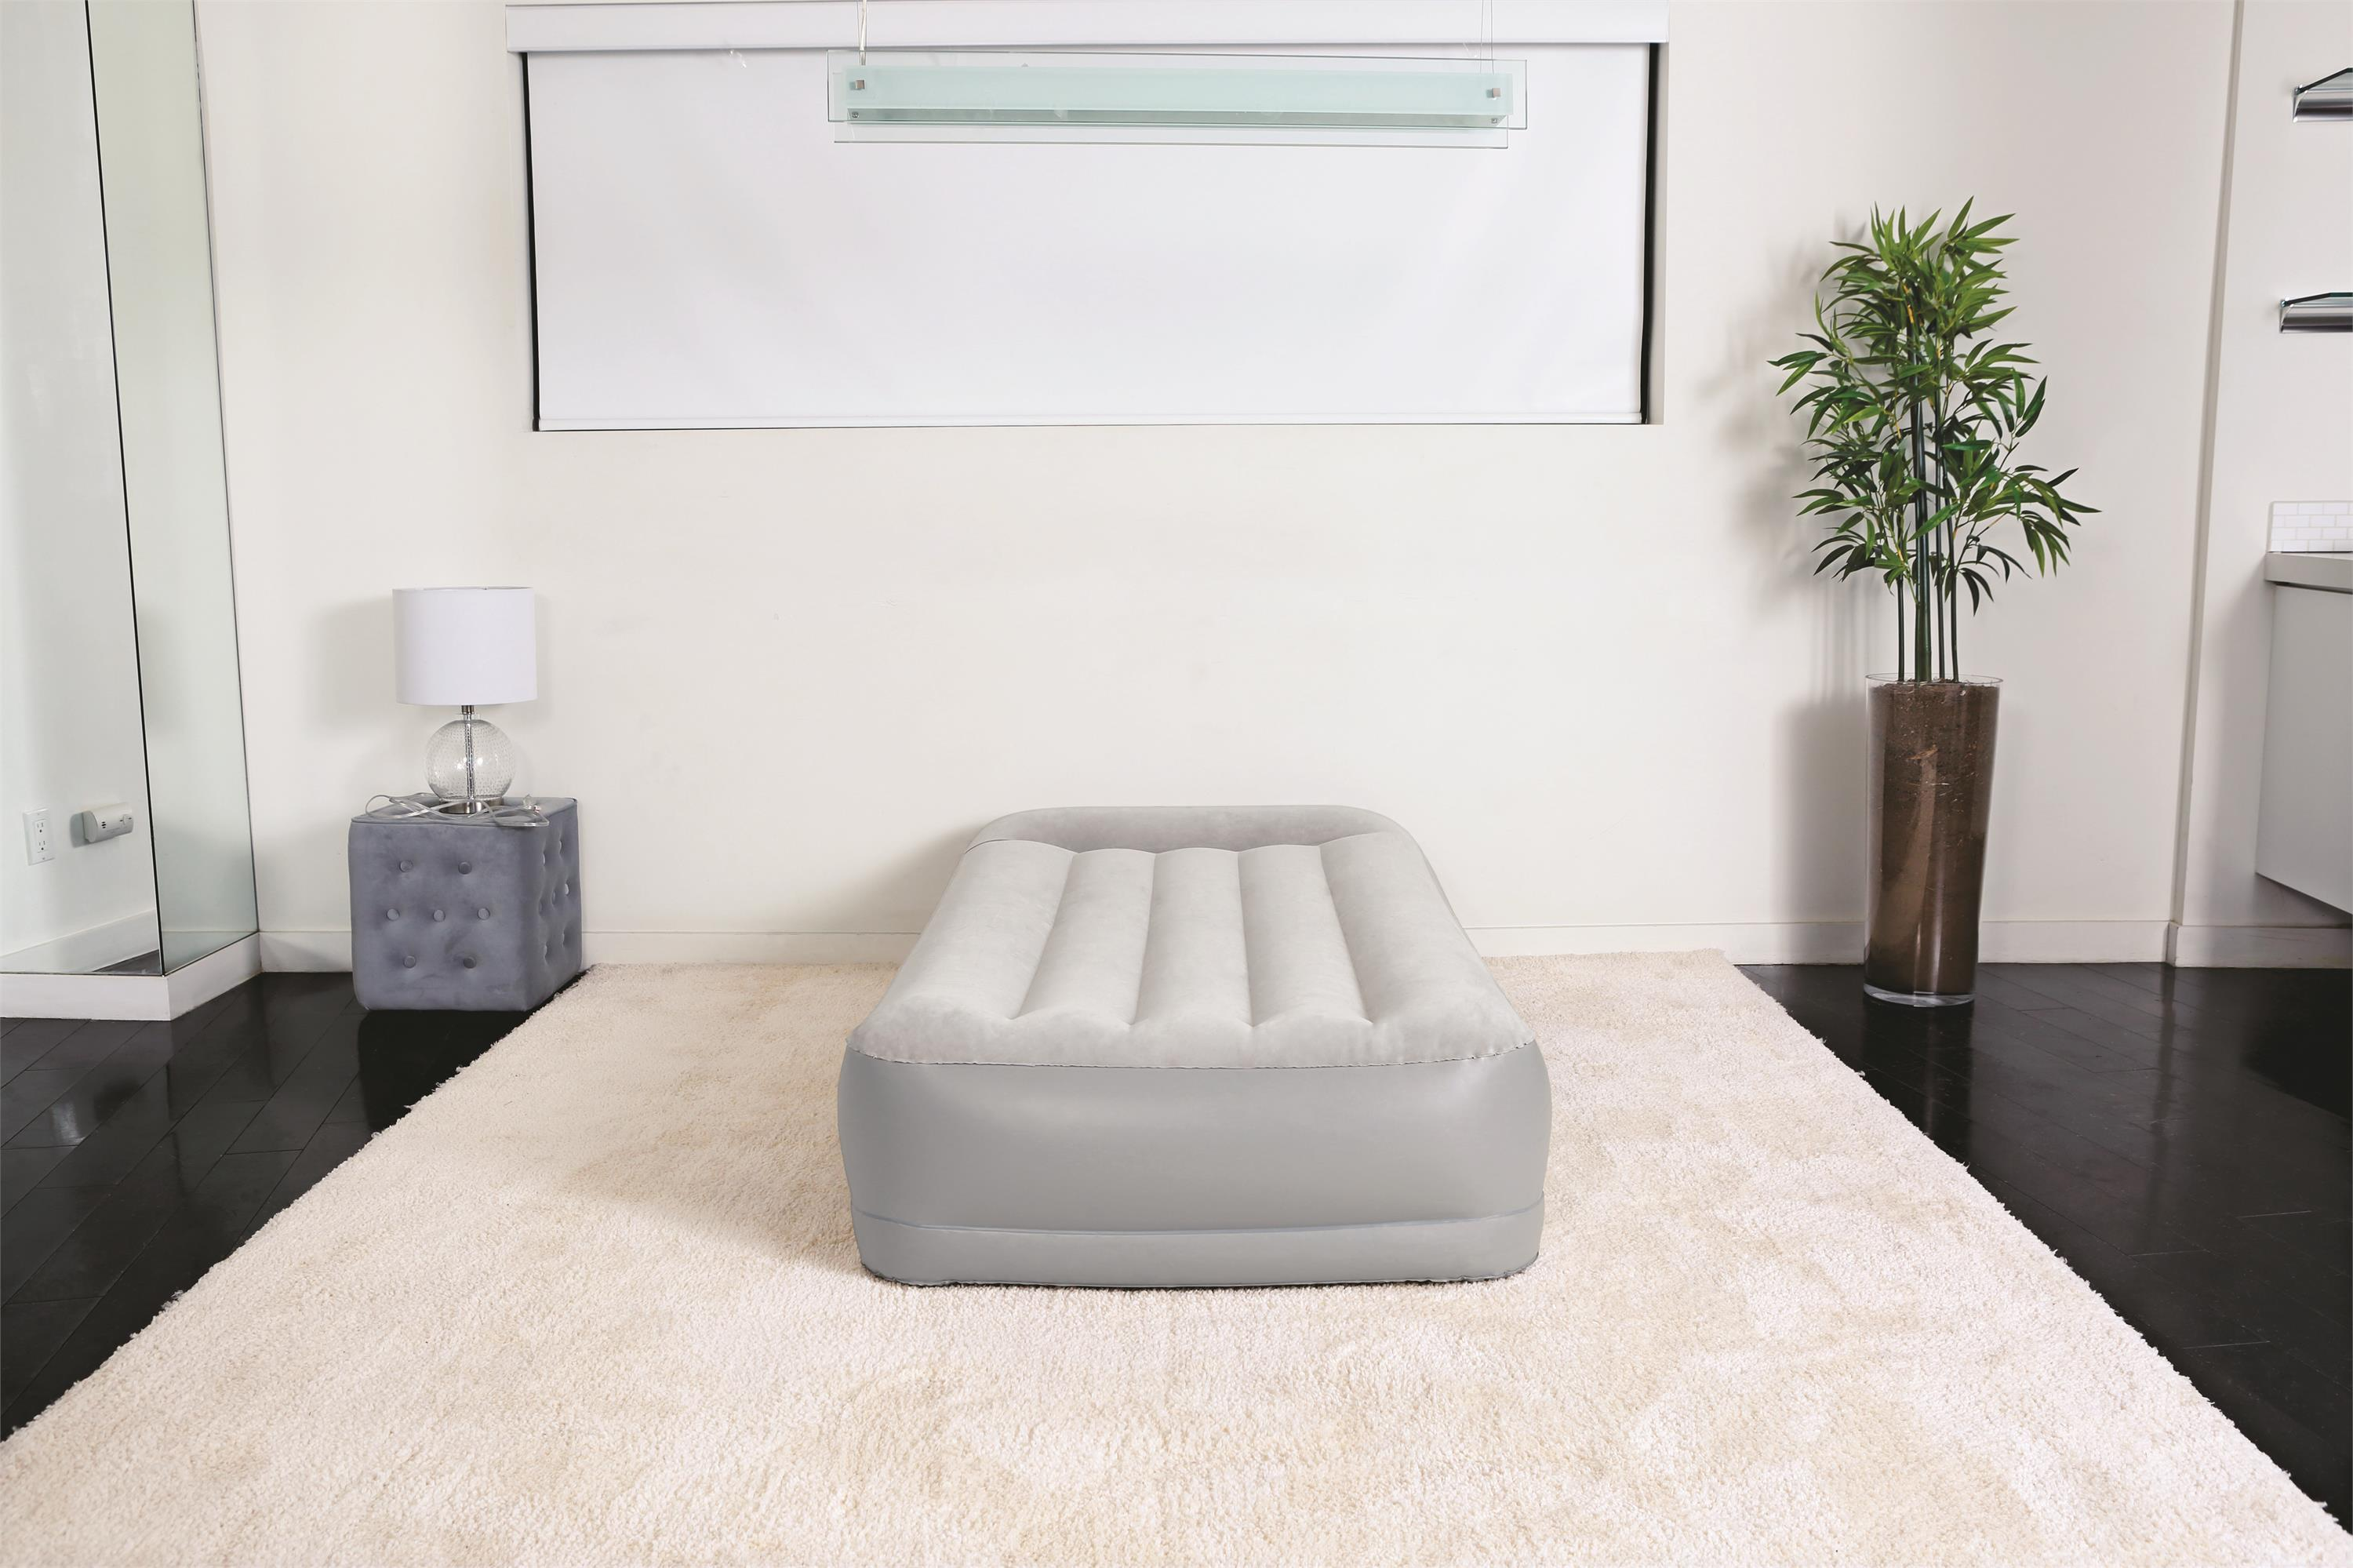 Single double flocking bed